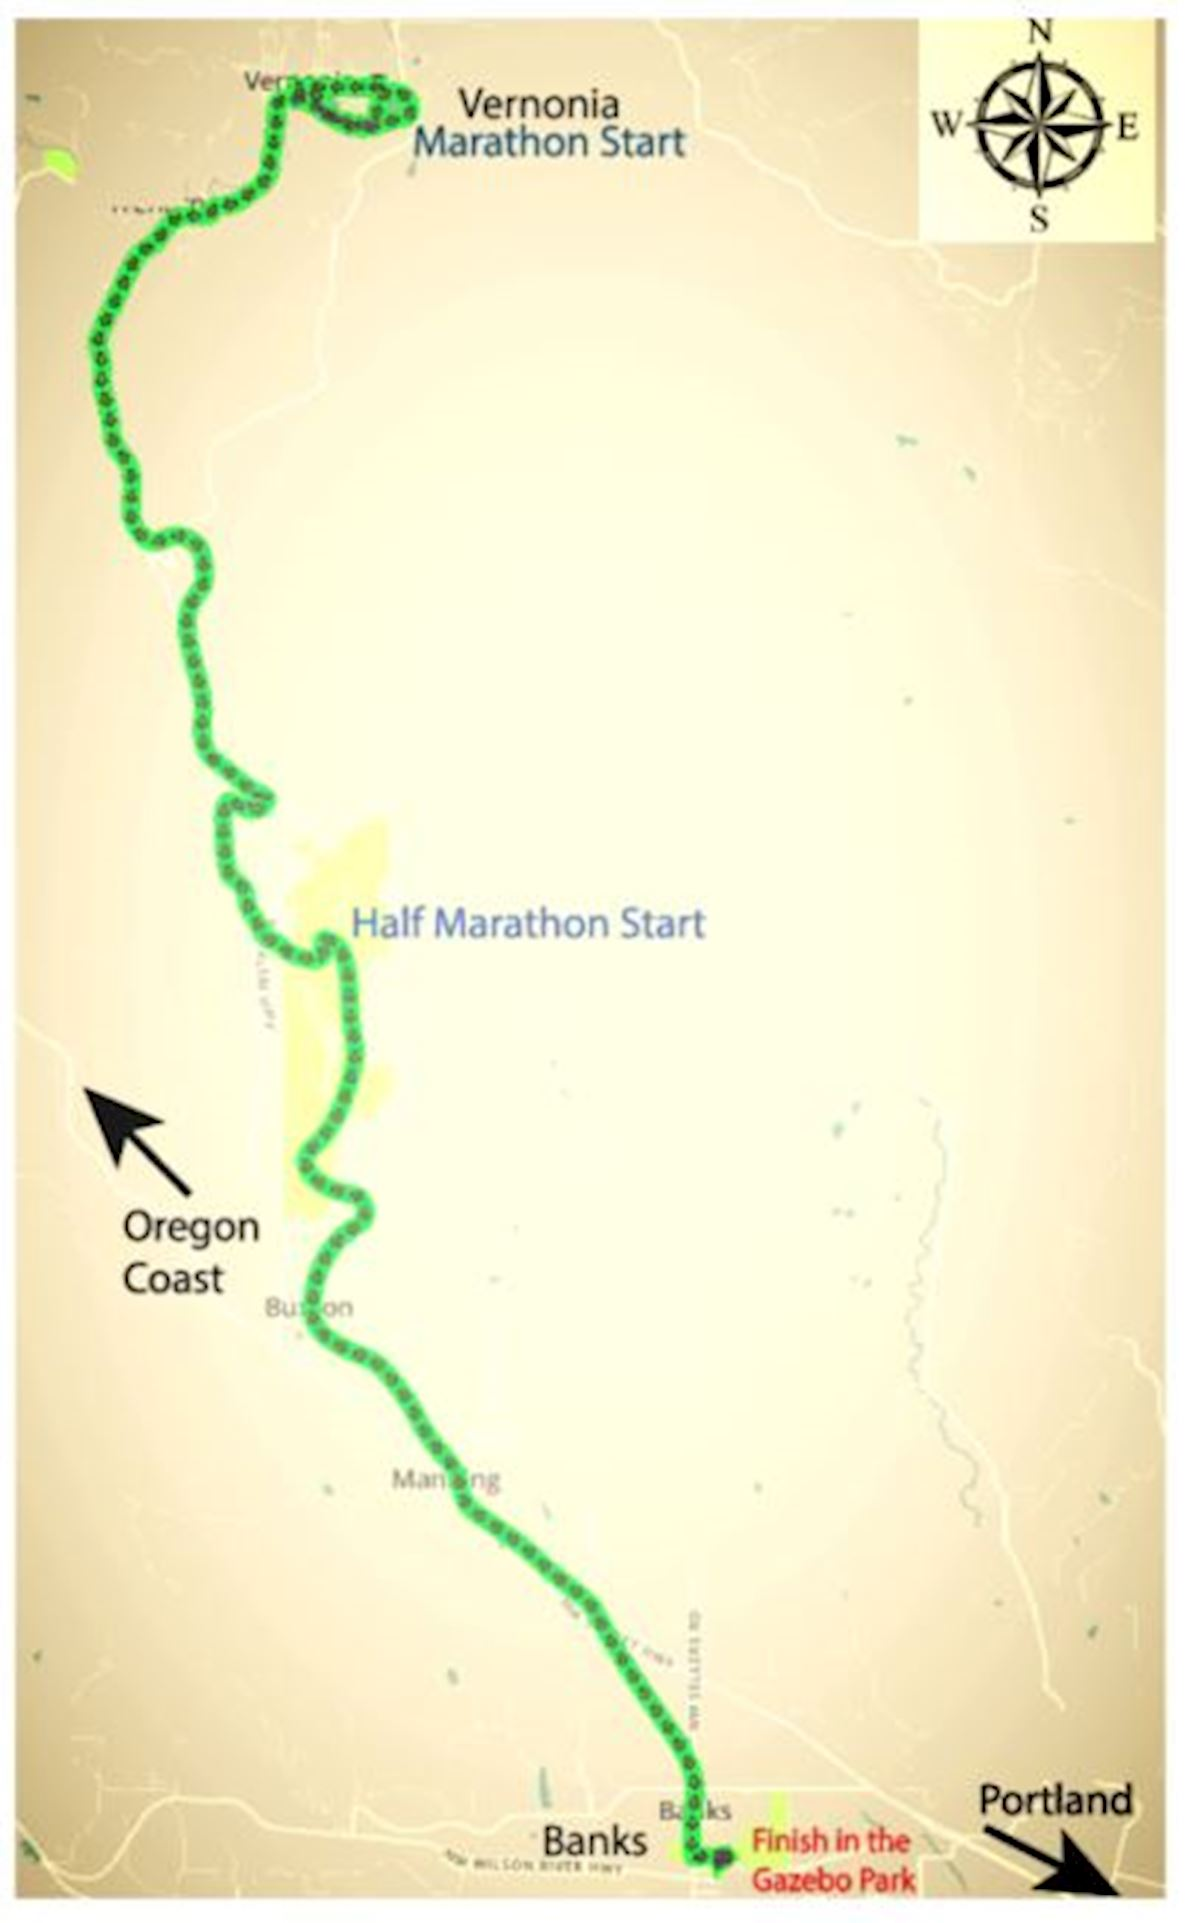 Oregon Summer Marathon Route Map